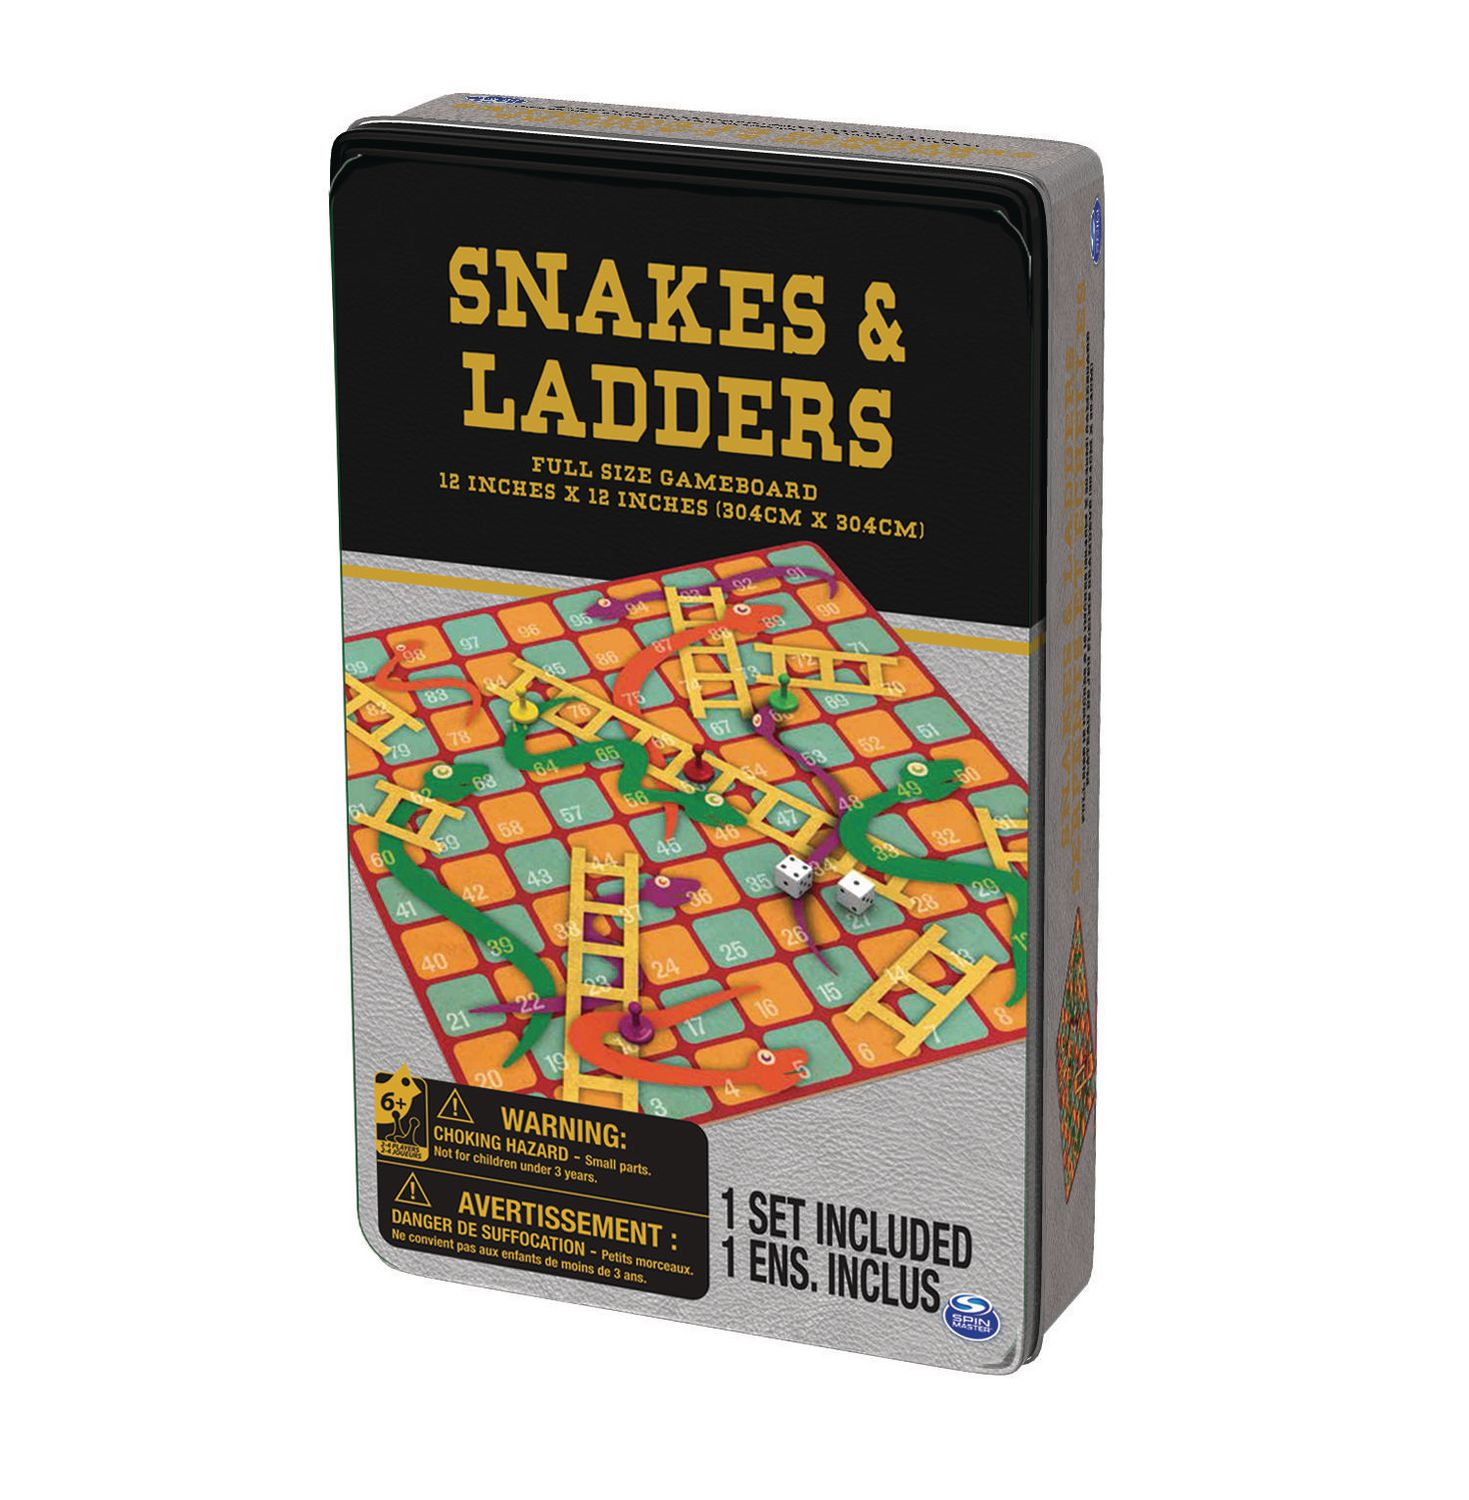 Cardinal Games Classic Snakes Ladders Game Walmart Canada